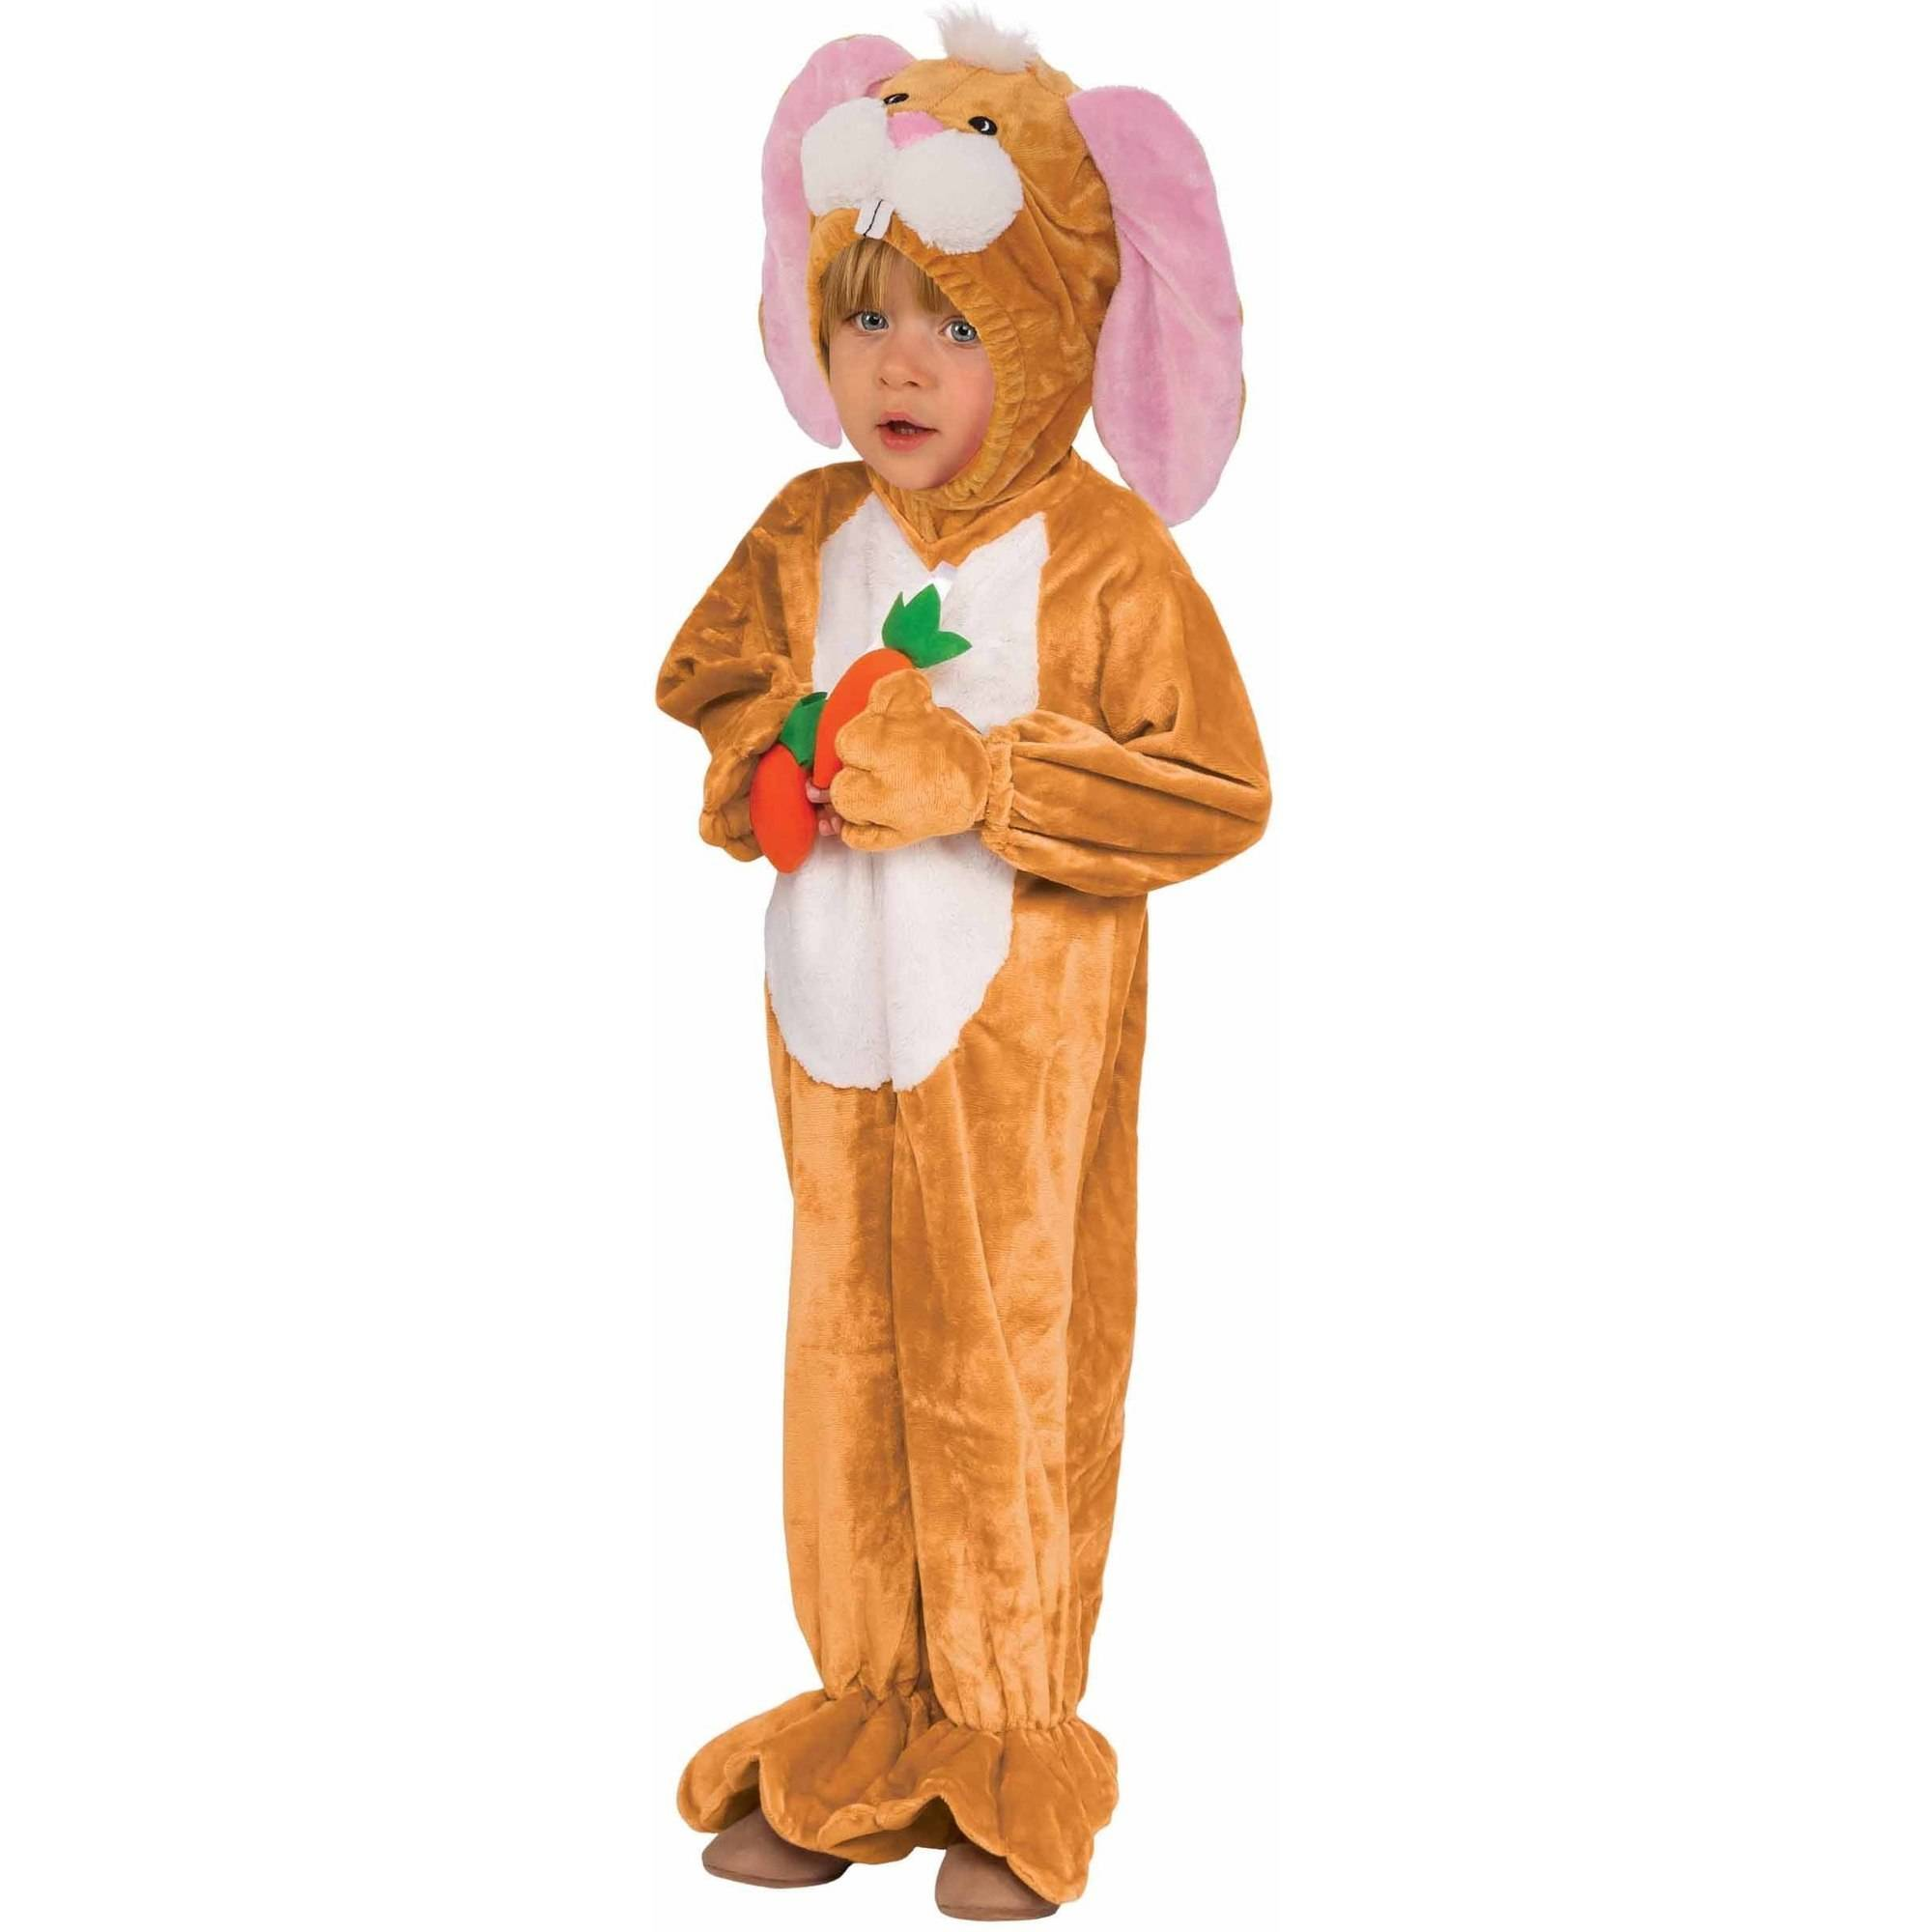 Funny Bunny Toddler's Costume, 3T-4T